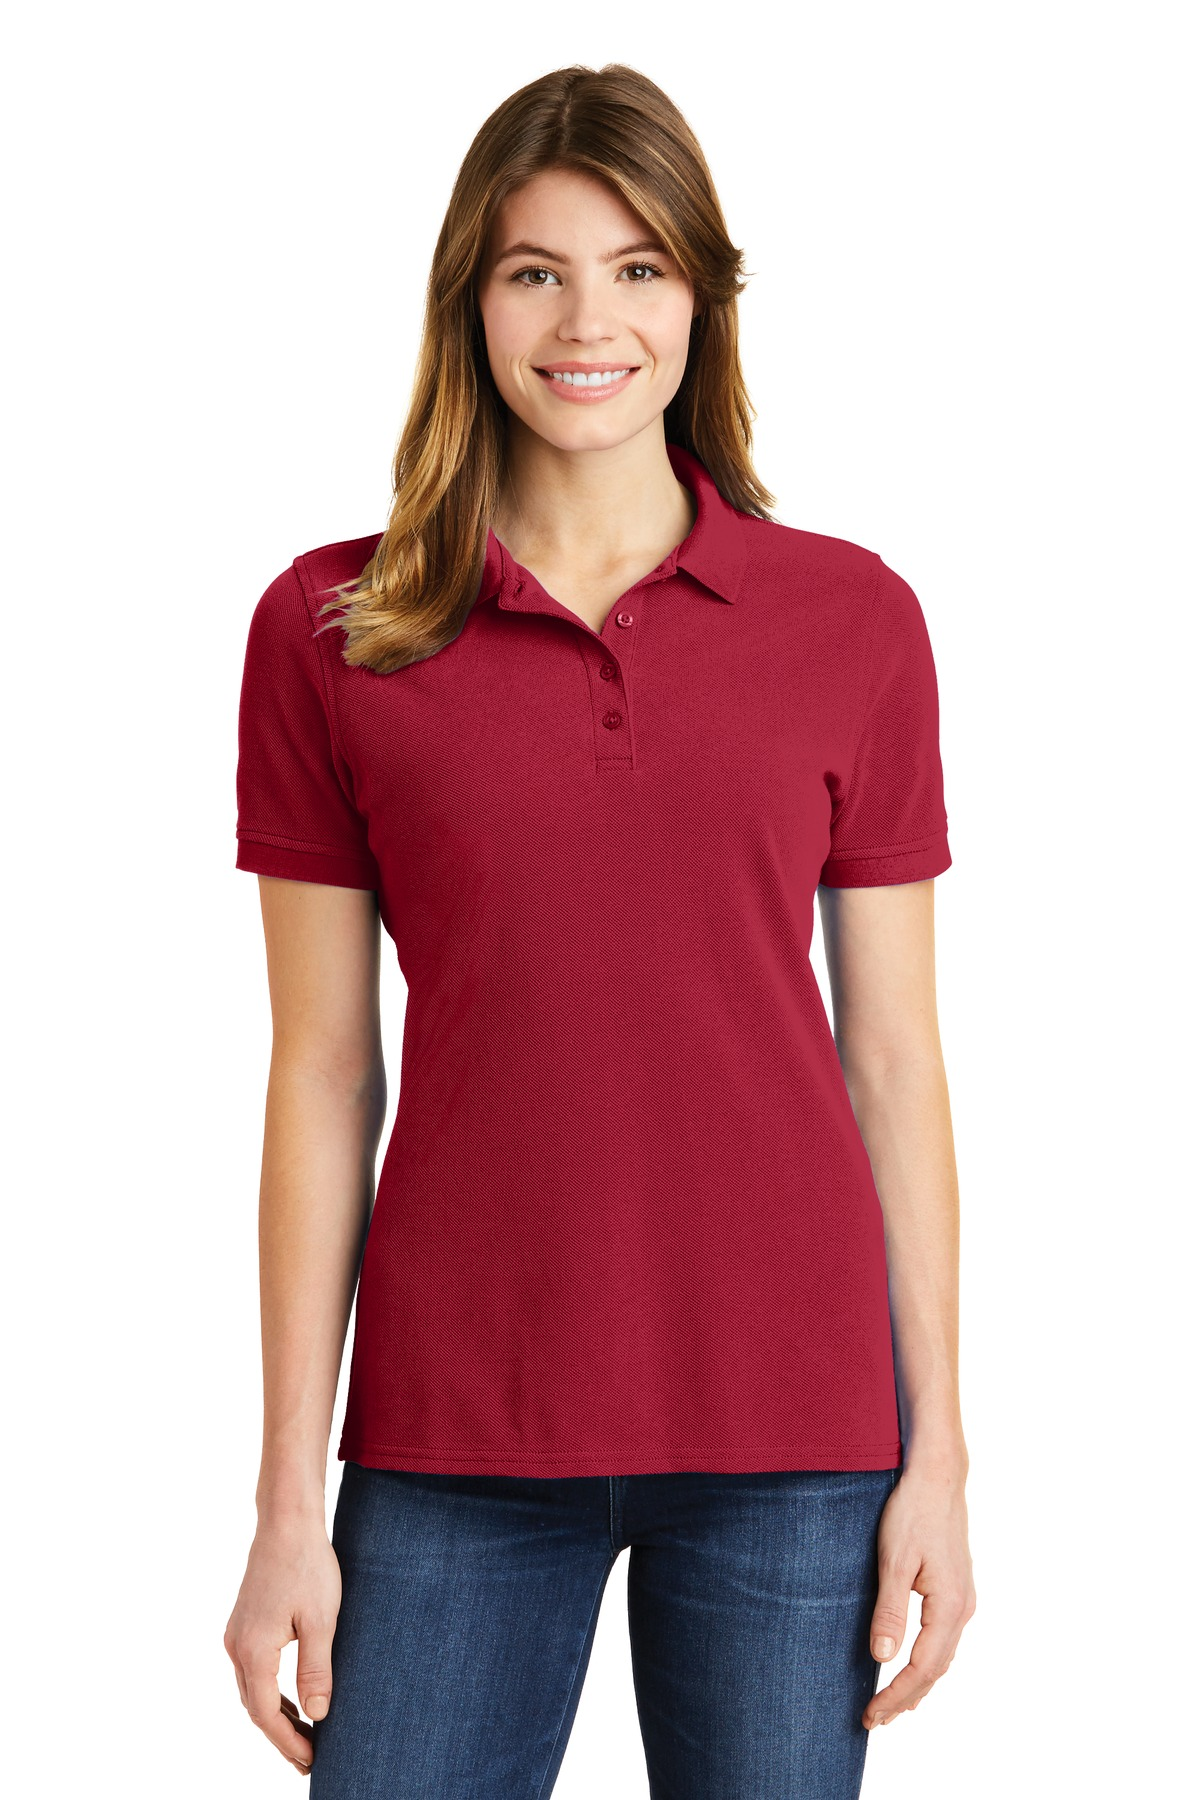 Port & Company ®  Ladies Combed Ring Spun Pique Polo. LKP1500 - Red